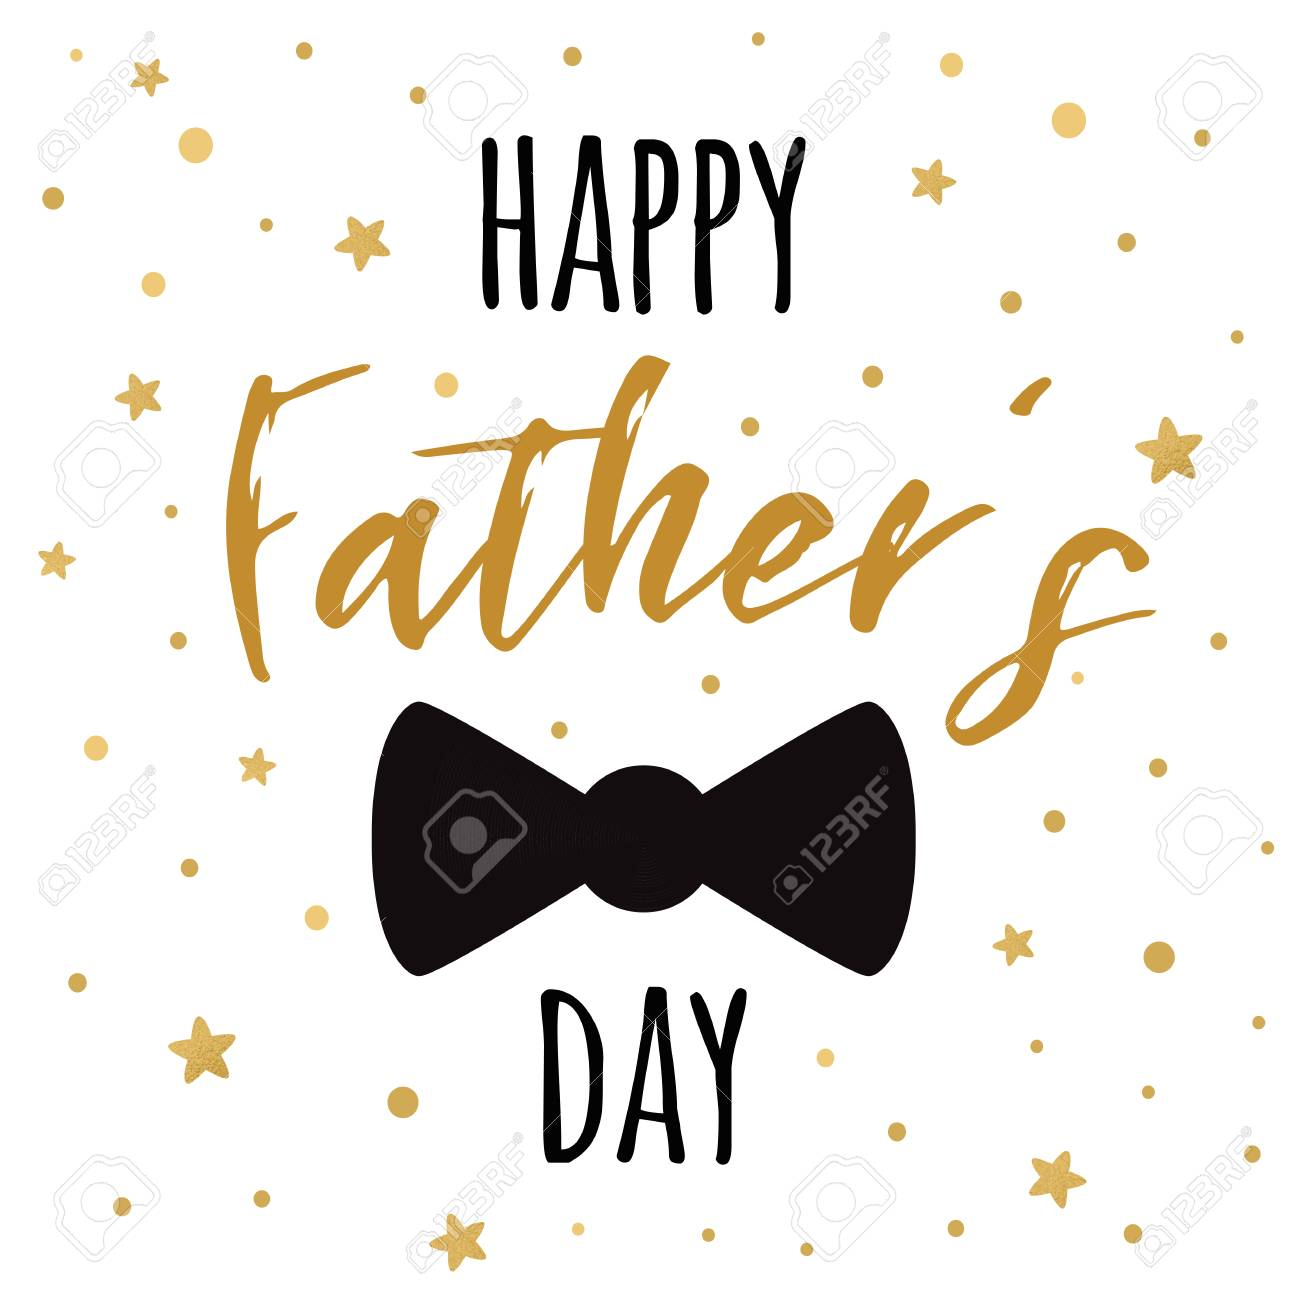 photo about Happy Father's Day Banner Printable named Fathers working day banner design and style with lettering, black bow tie erfly